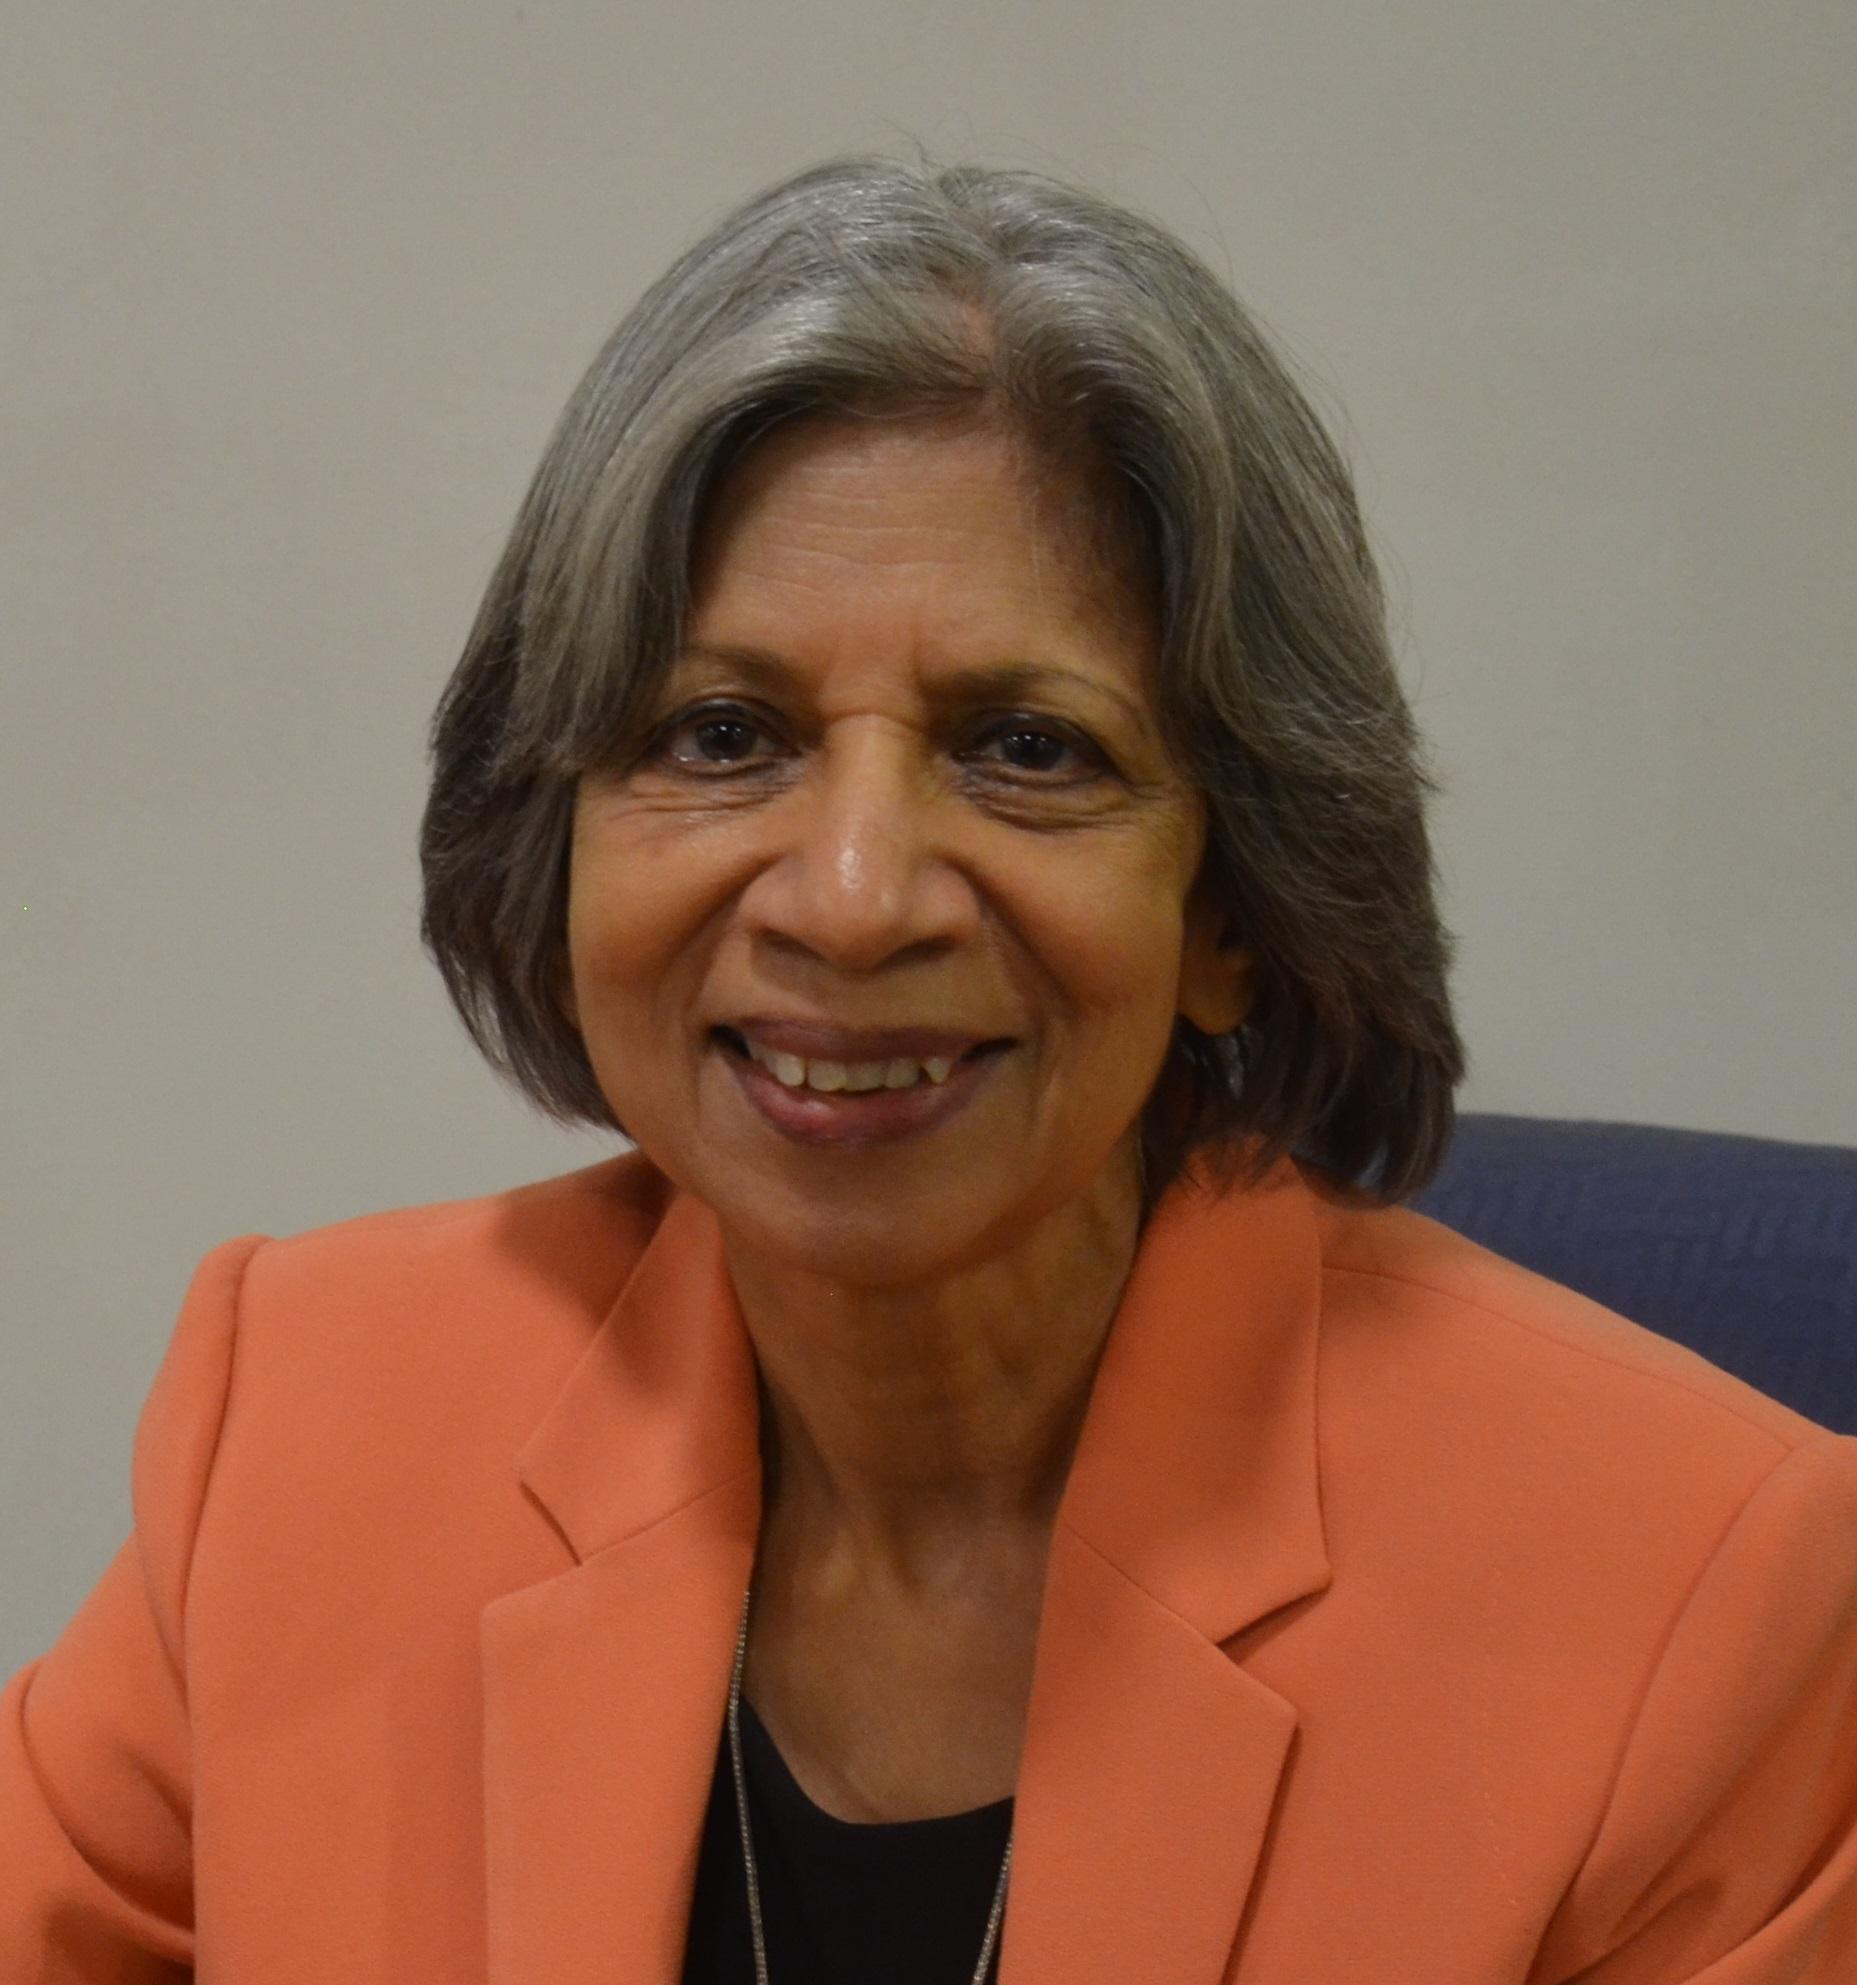 Millie Banerjee, Chair at NHS Blood and Transplant